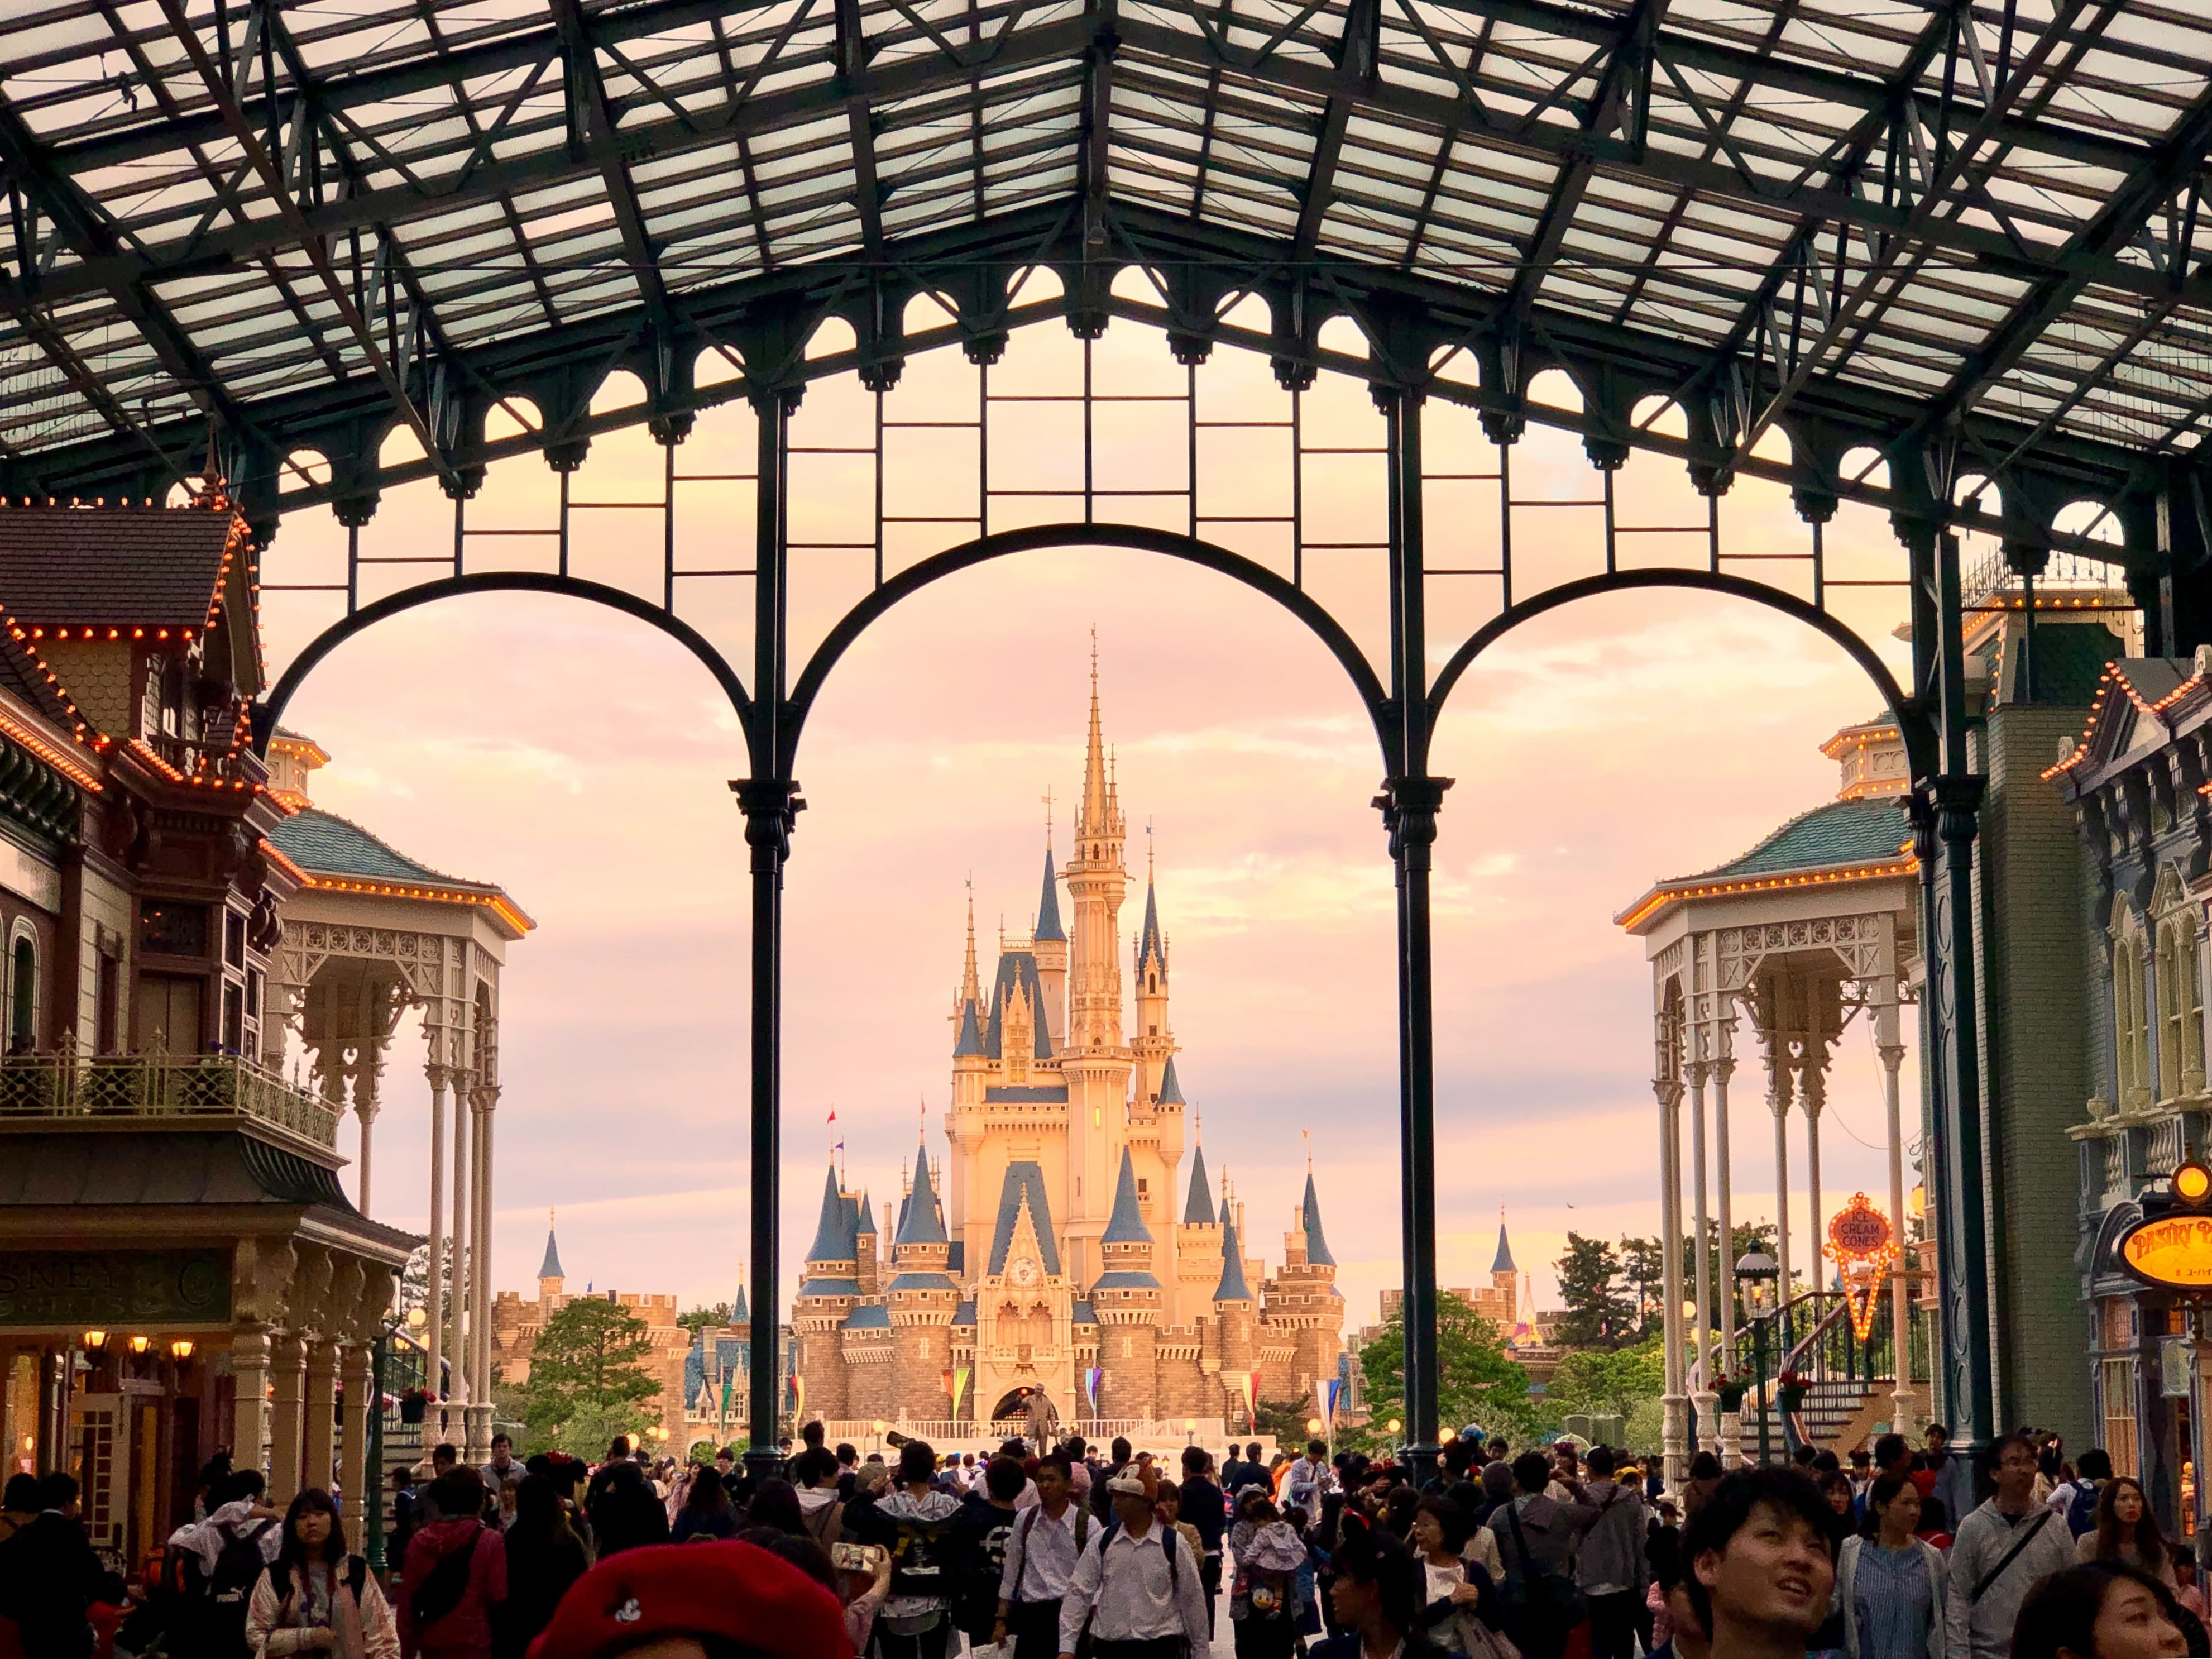 The view of Cinderella Castle from the entrance of Tokyo Disneyland